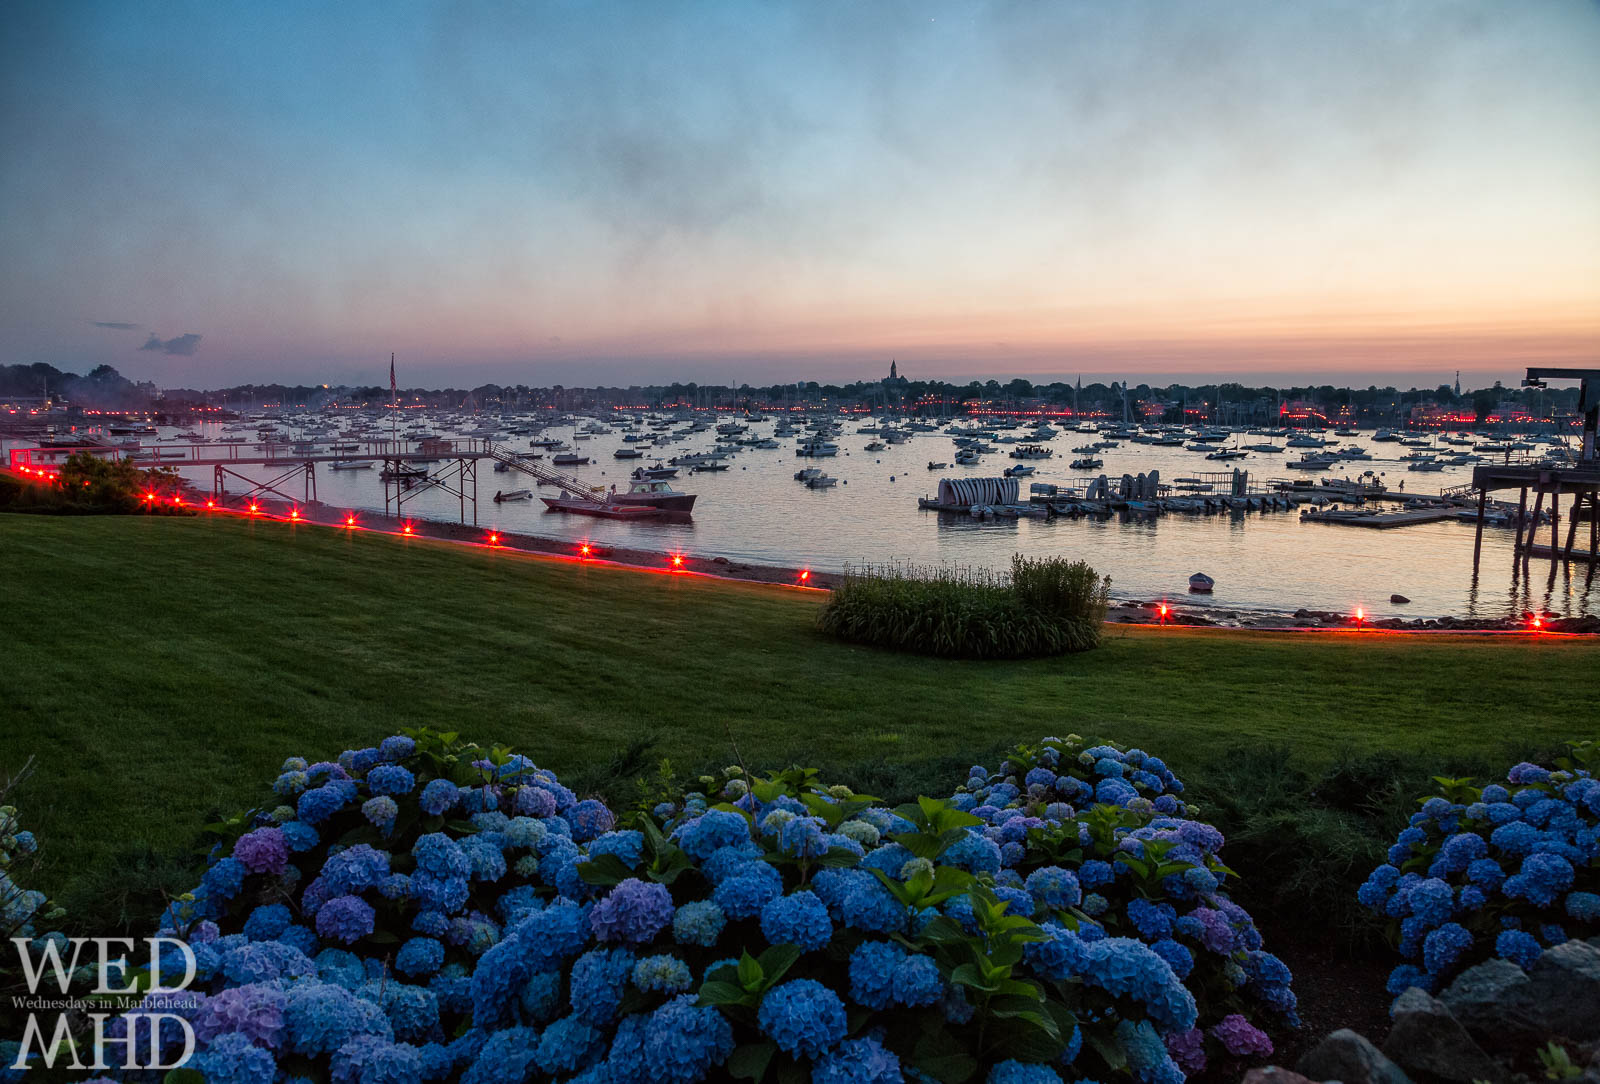 Flares are seen lighting up the harbor on the Fourth of July in Marblehead